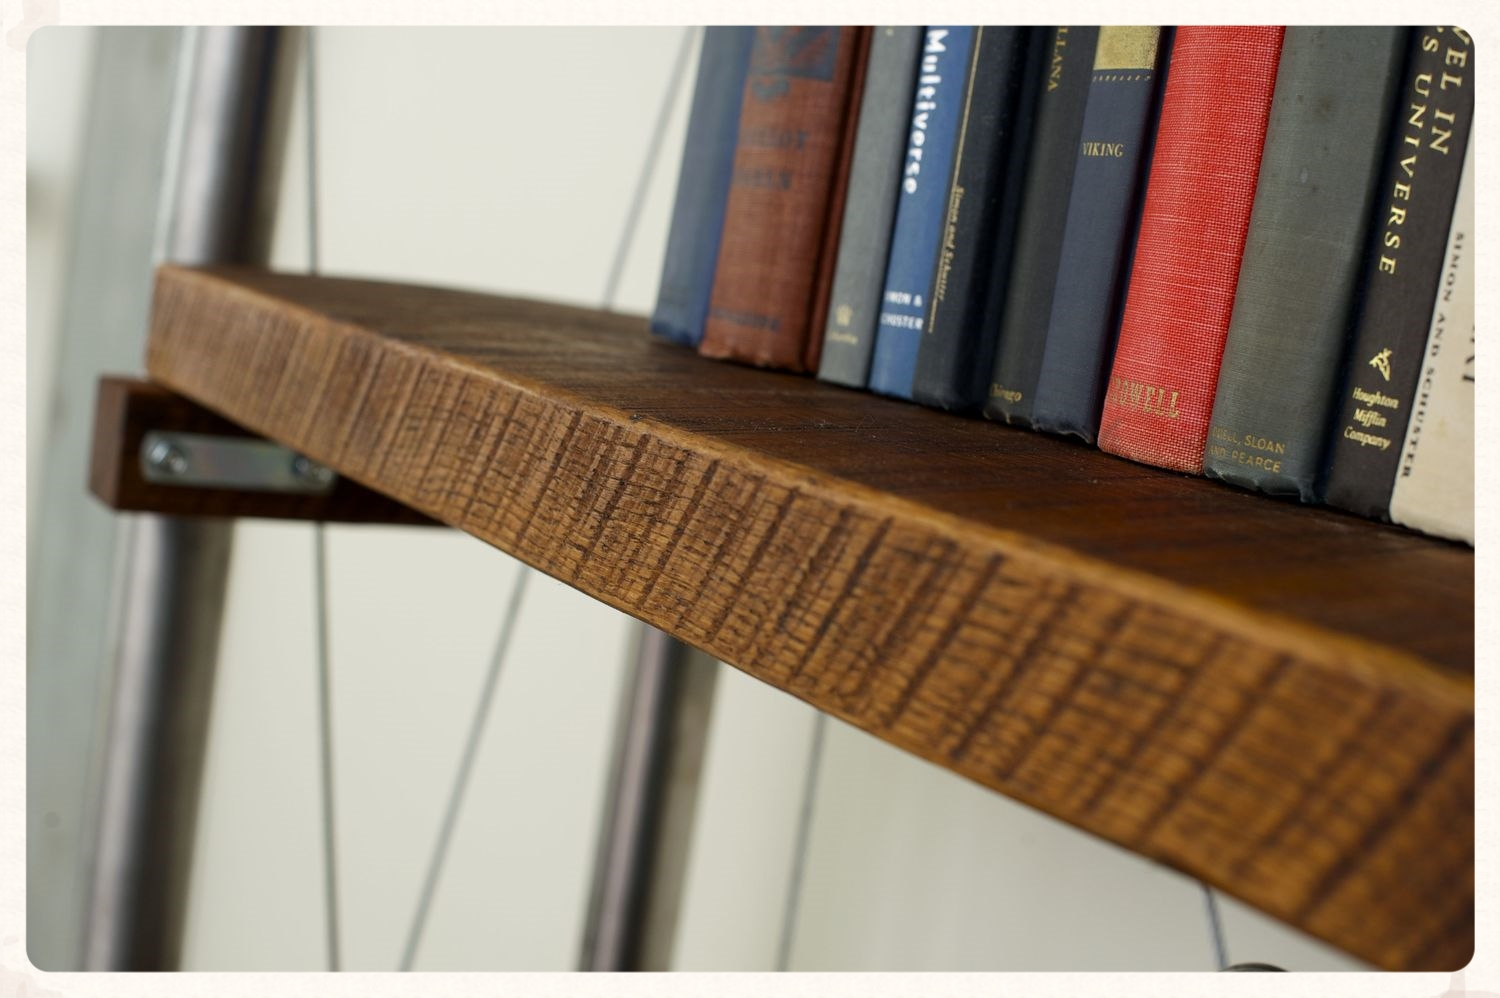 Dark raw tung oil fills in the detail enhancing the saw marks on rough sawn oak plank shelving.